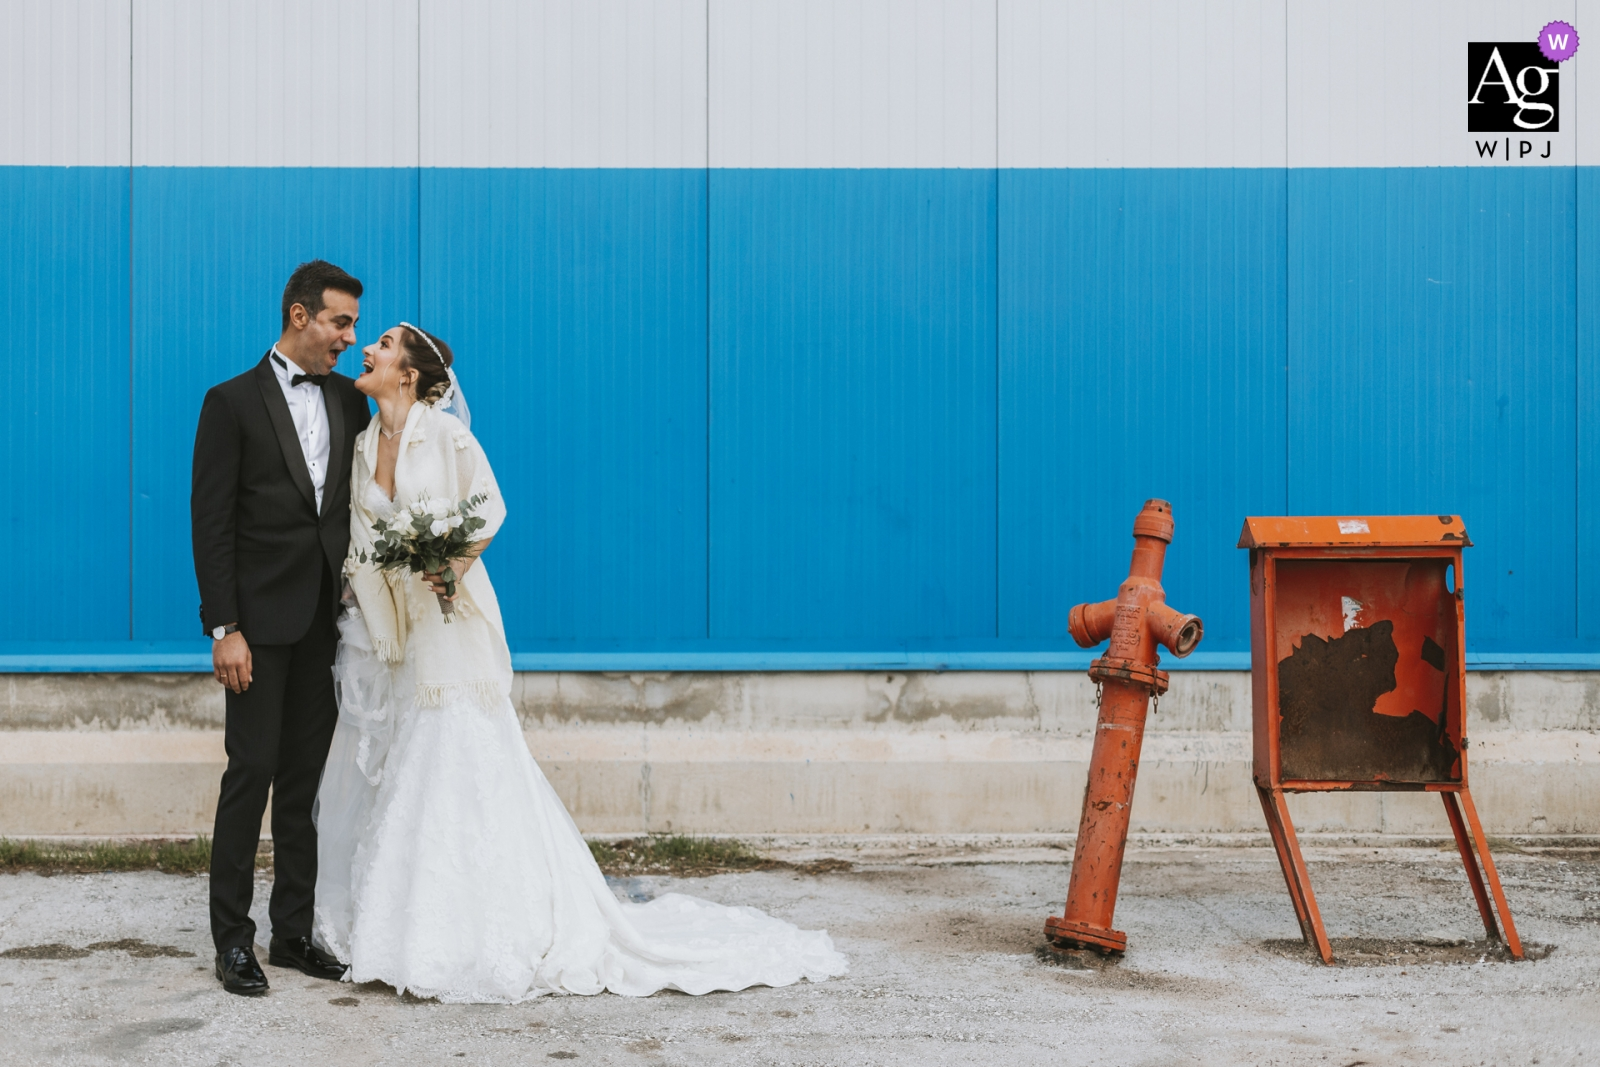 mersin bride and groom portrait on wedding day | the couple is shouting at each other